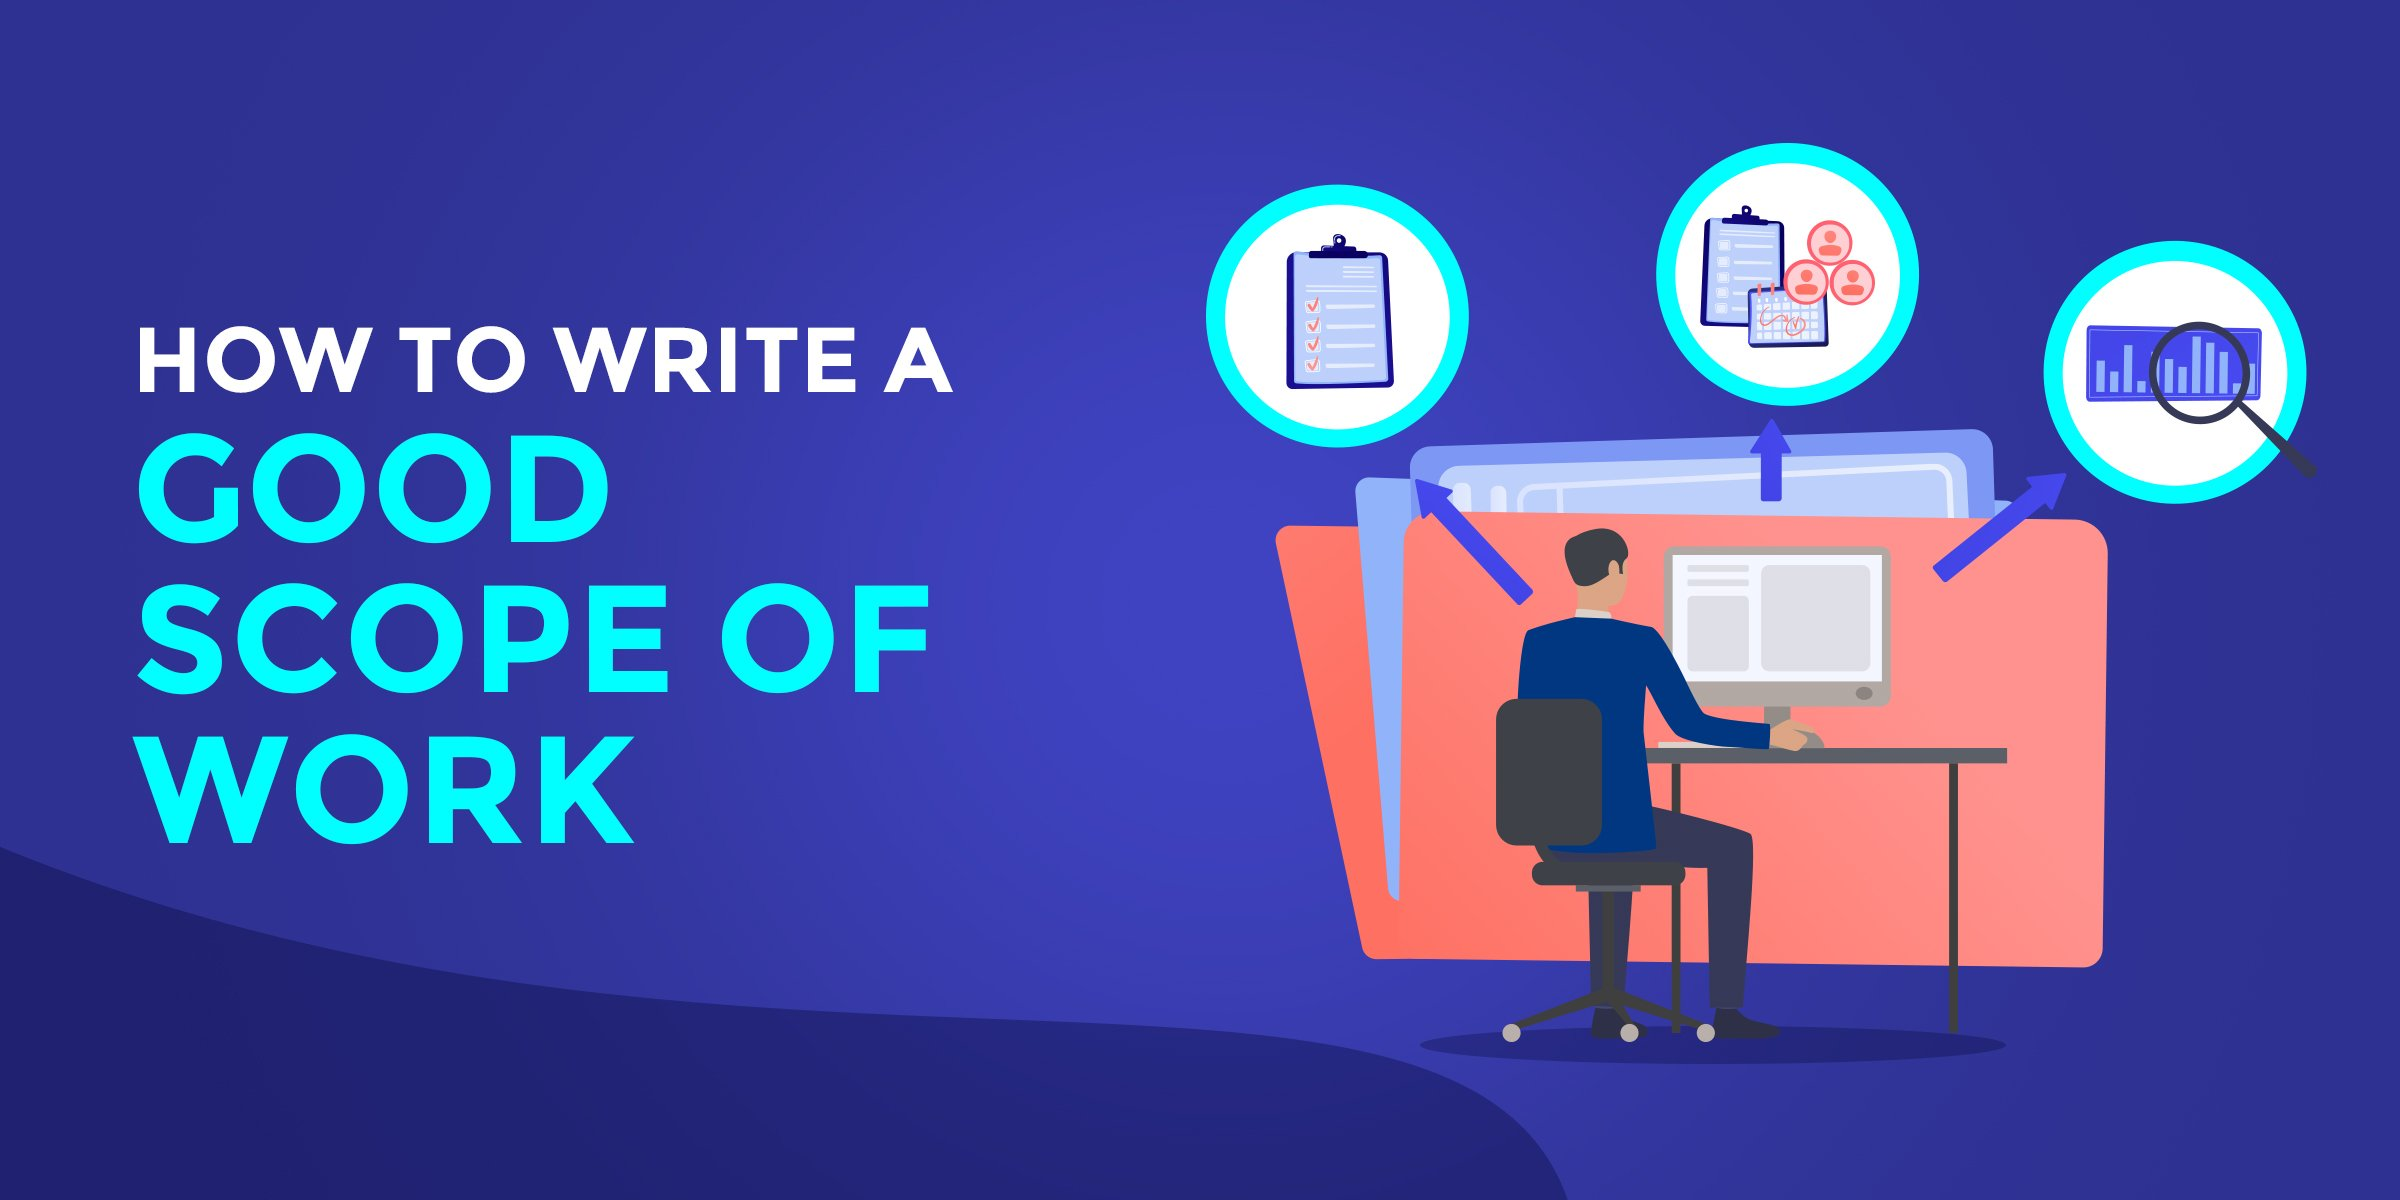 How to Write a Good Scope of Work